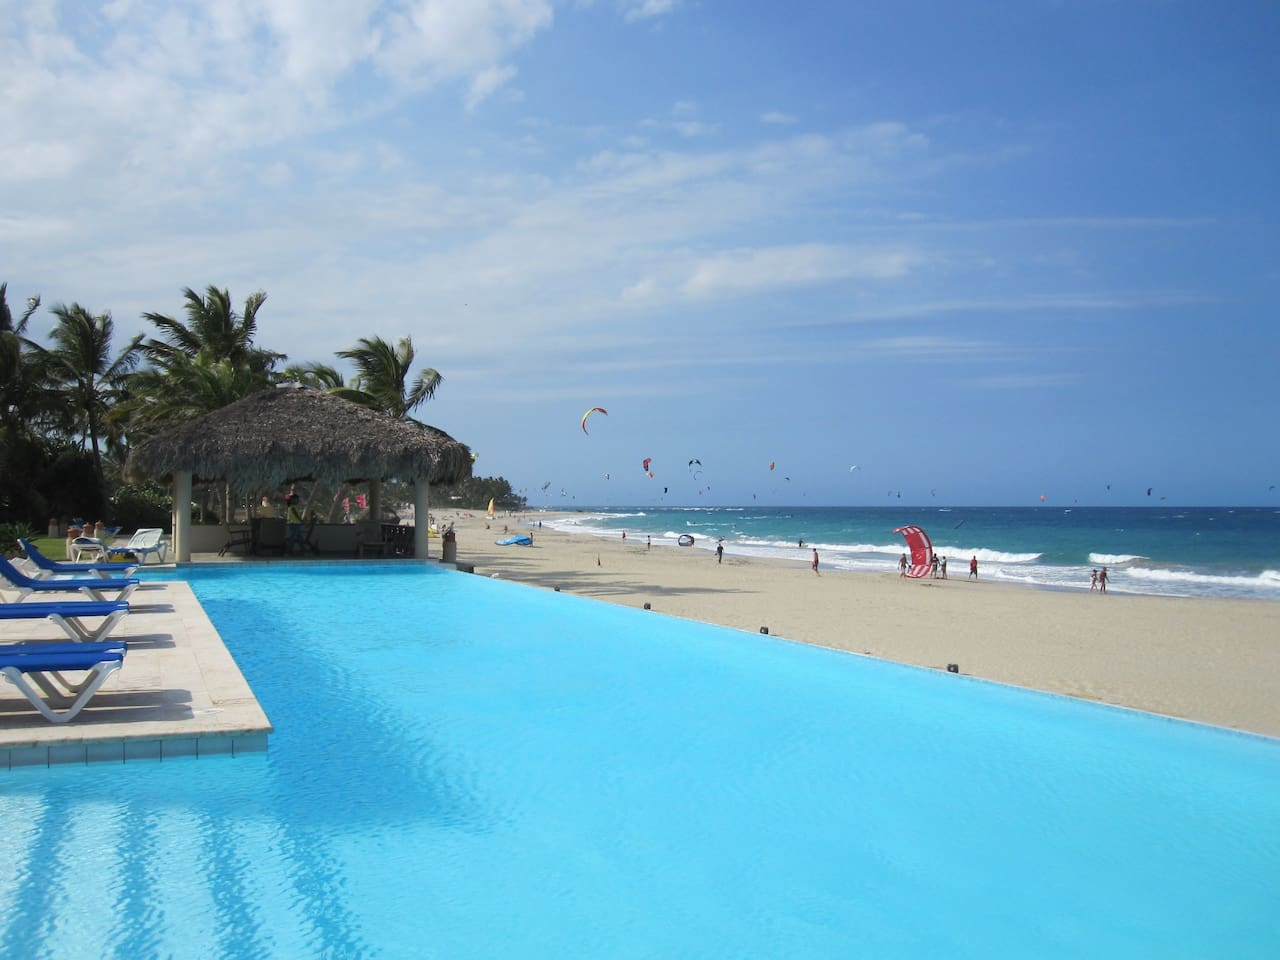 100 ft. Infinity Pool, the only thing separating you from the beach.